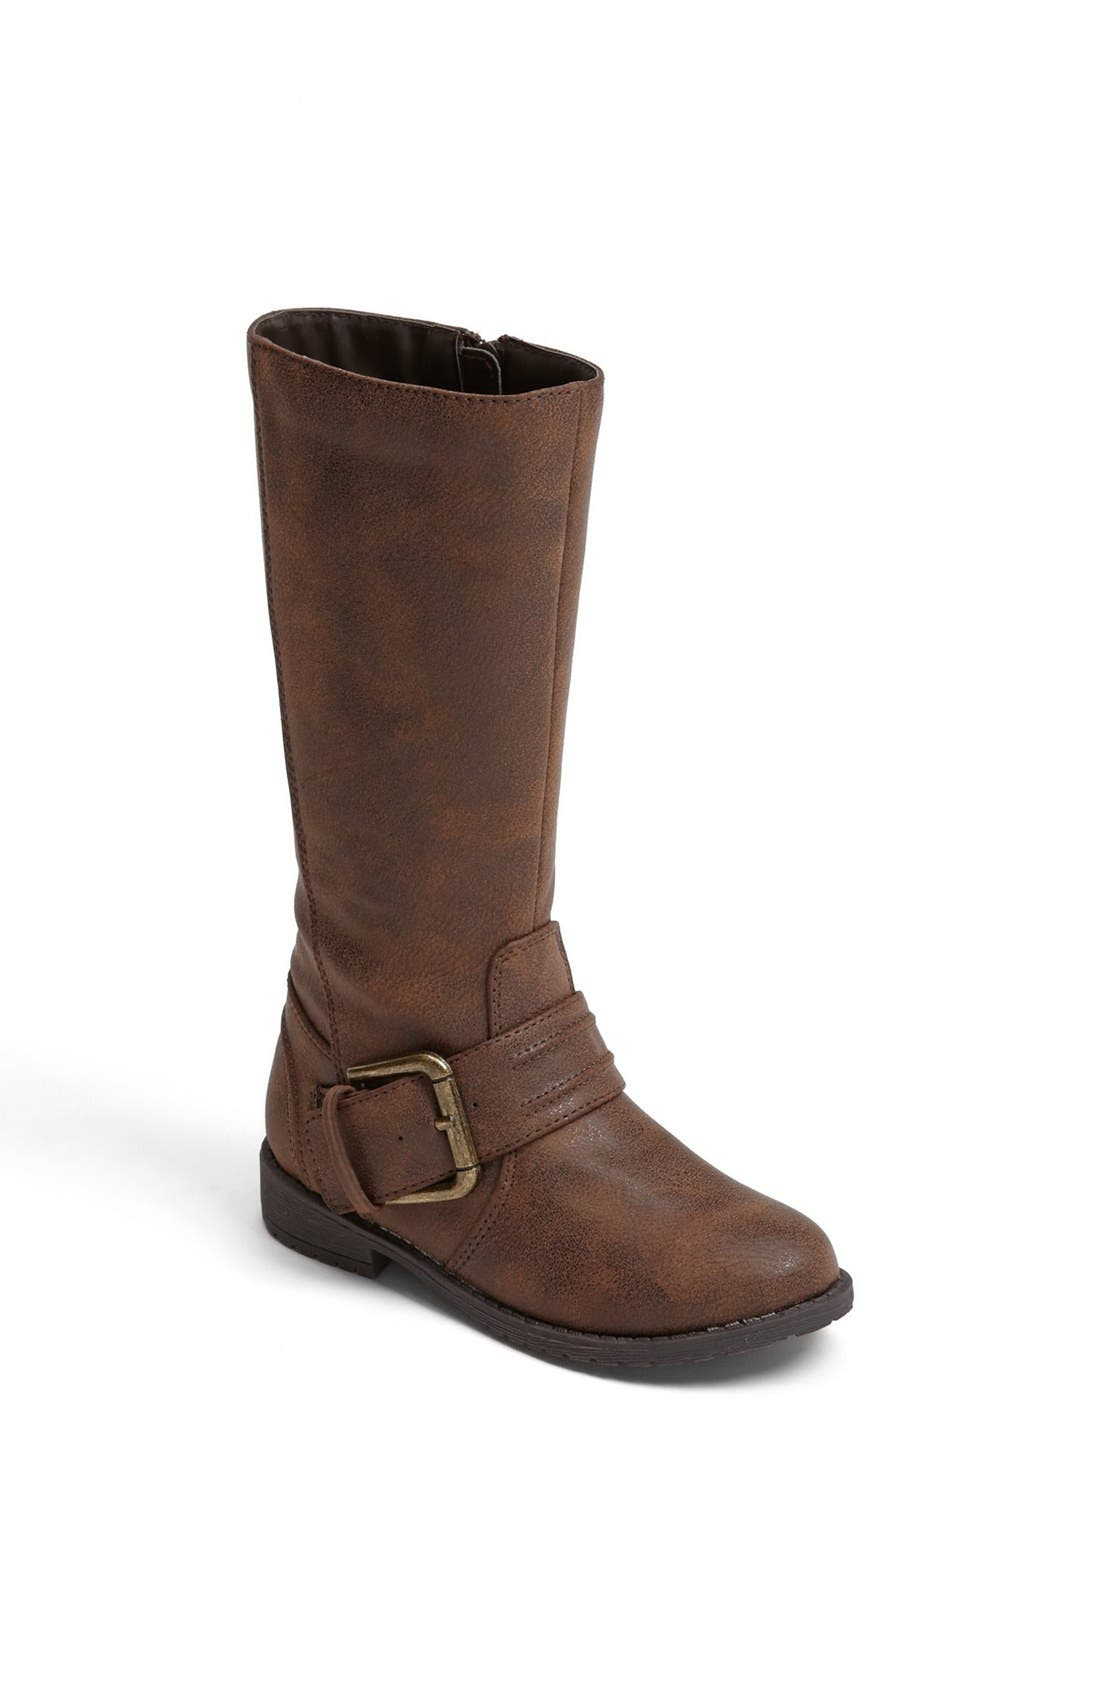 Alternate Image 1 Selected - Kenneth Cole Reaction 'Tough Flake' Boot (Toddler, Little Kid & Big Kid)